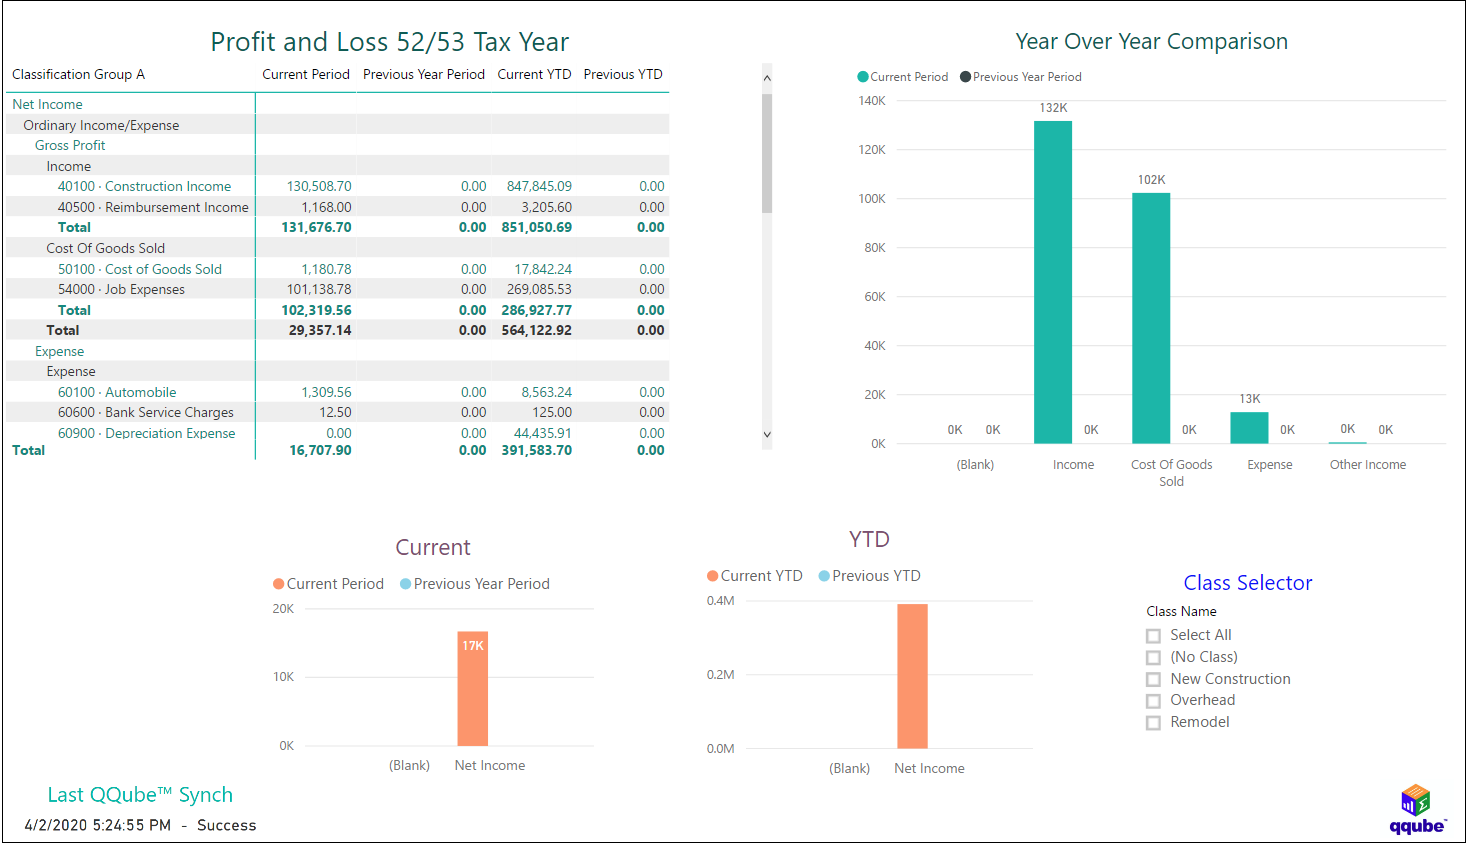 QuickBooks Profit and Loss by Class for 52/53 Tax Year using QQube with Power BI